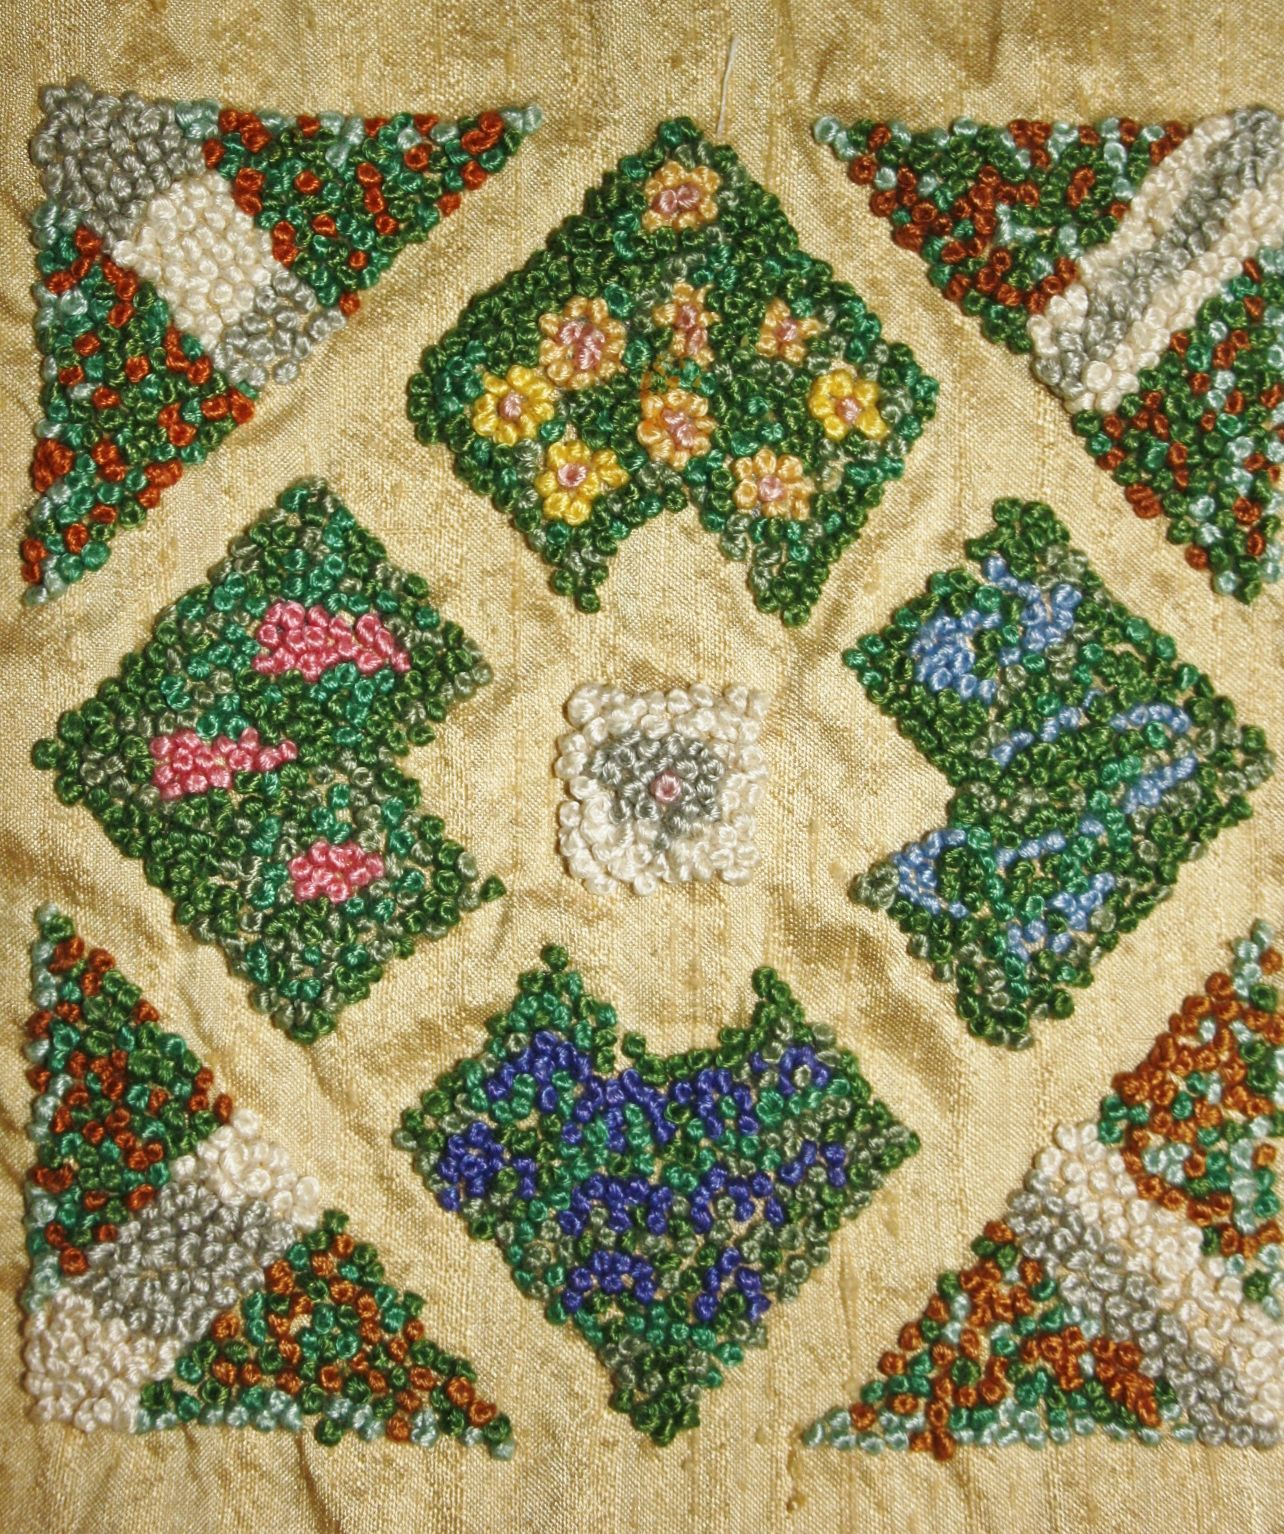 My French Knot Formal Garden Ribbon Embroidery Sampler done on Gold Dupion Silk